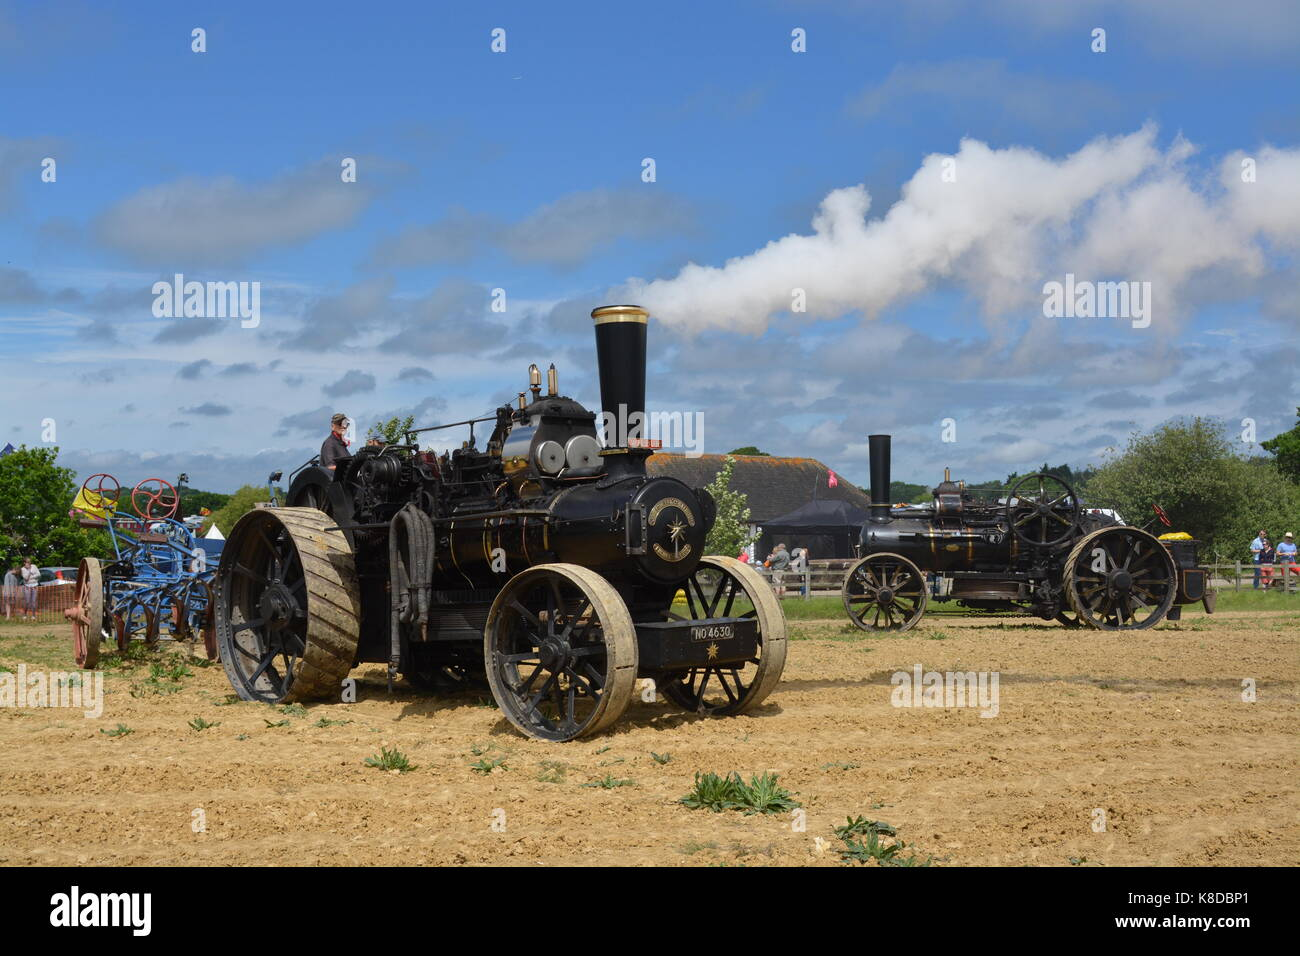 Ploughing Engine Stock Photos & Ploughing Engine Stock